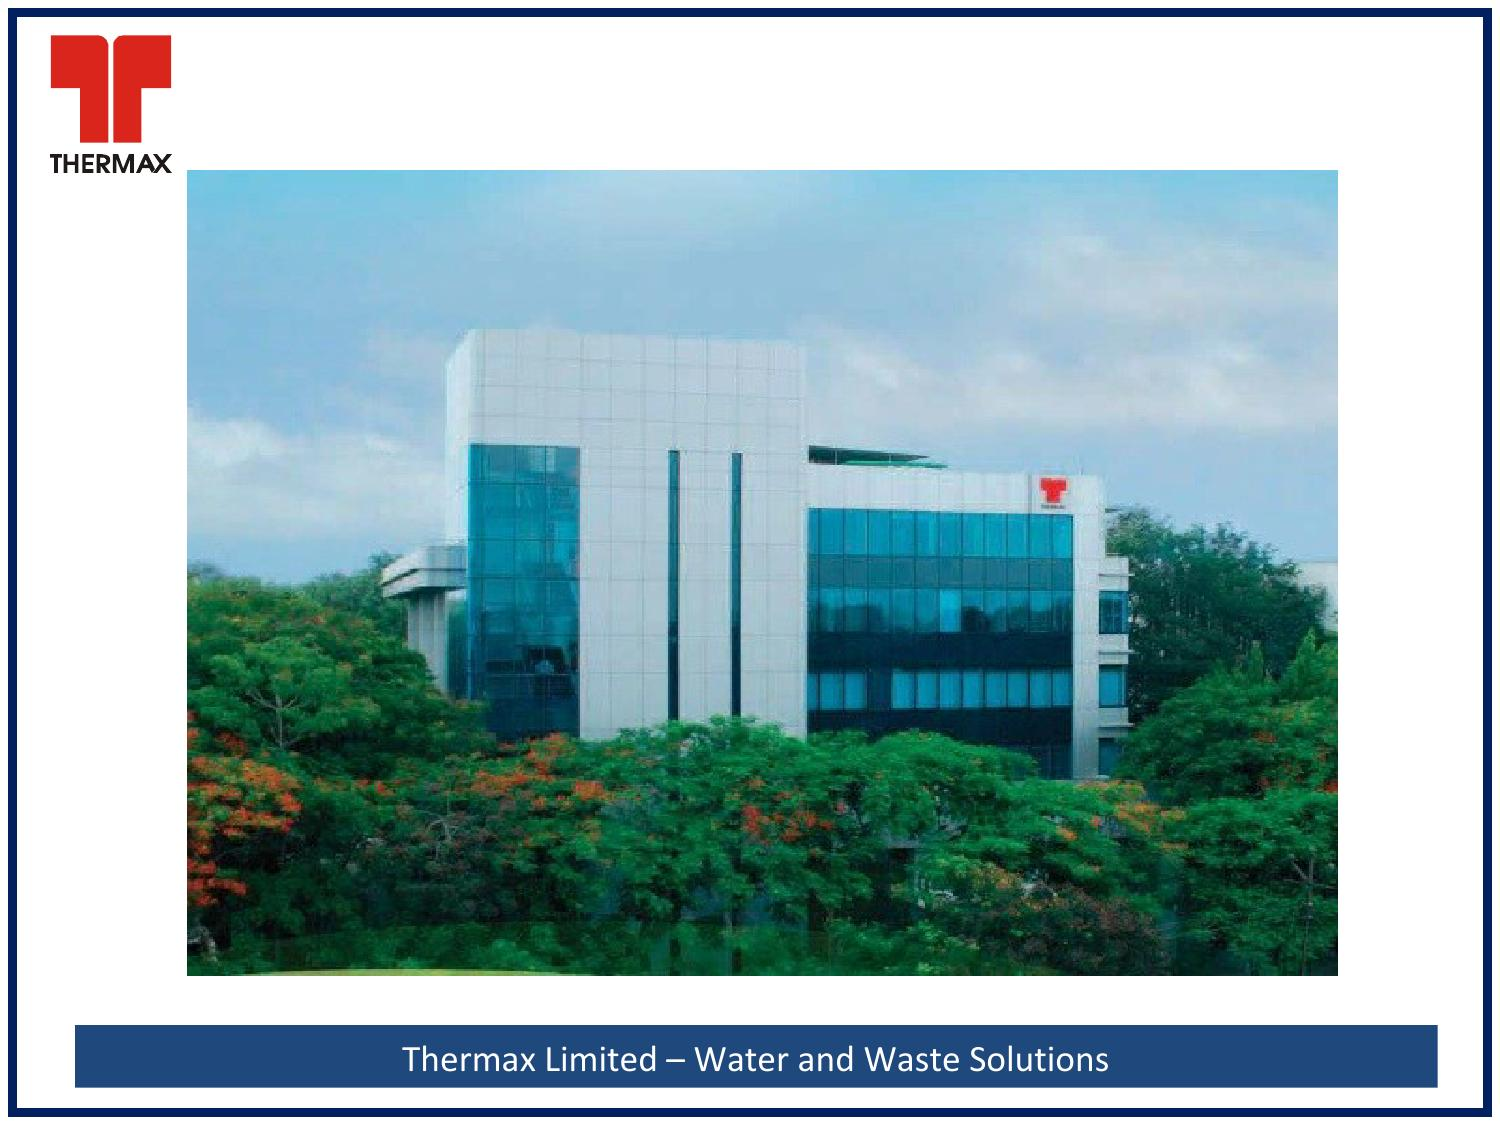 Thermax Limited - Water and Waste Solutions by India Water Week - issuu